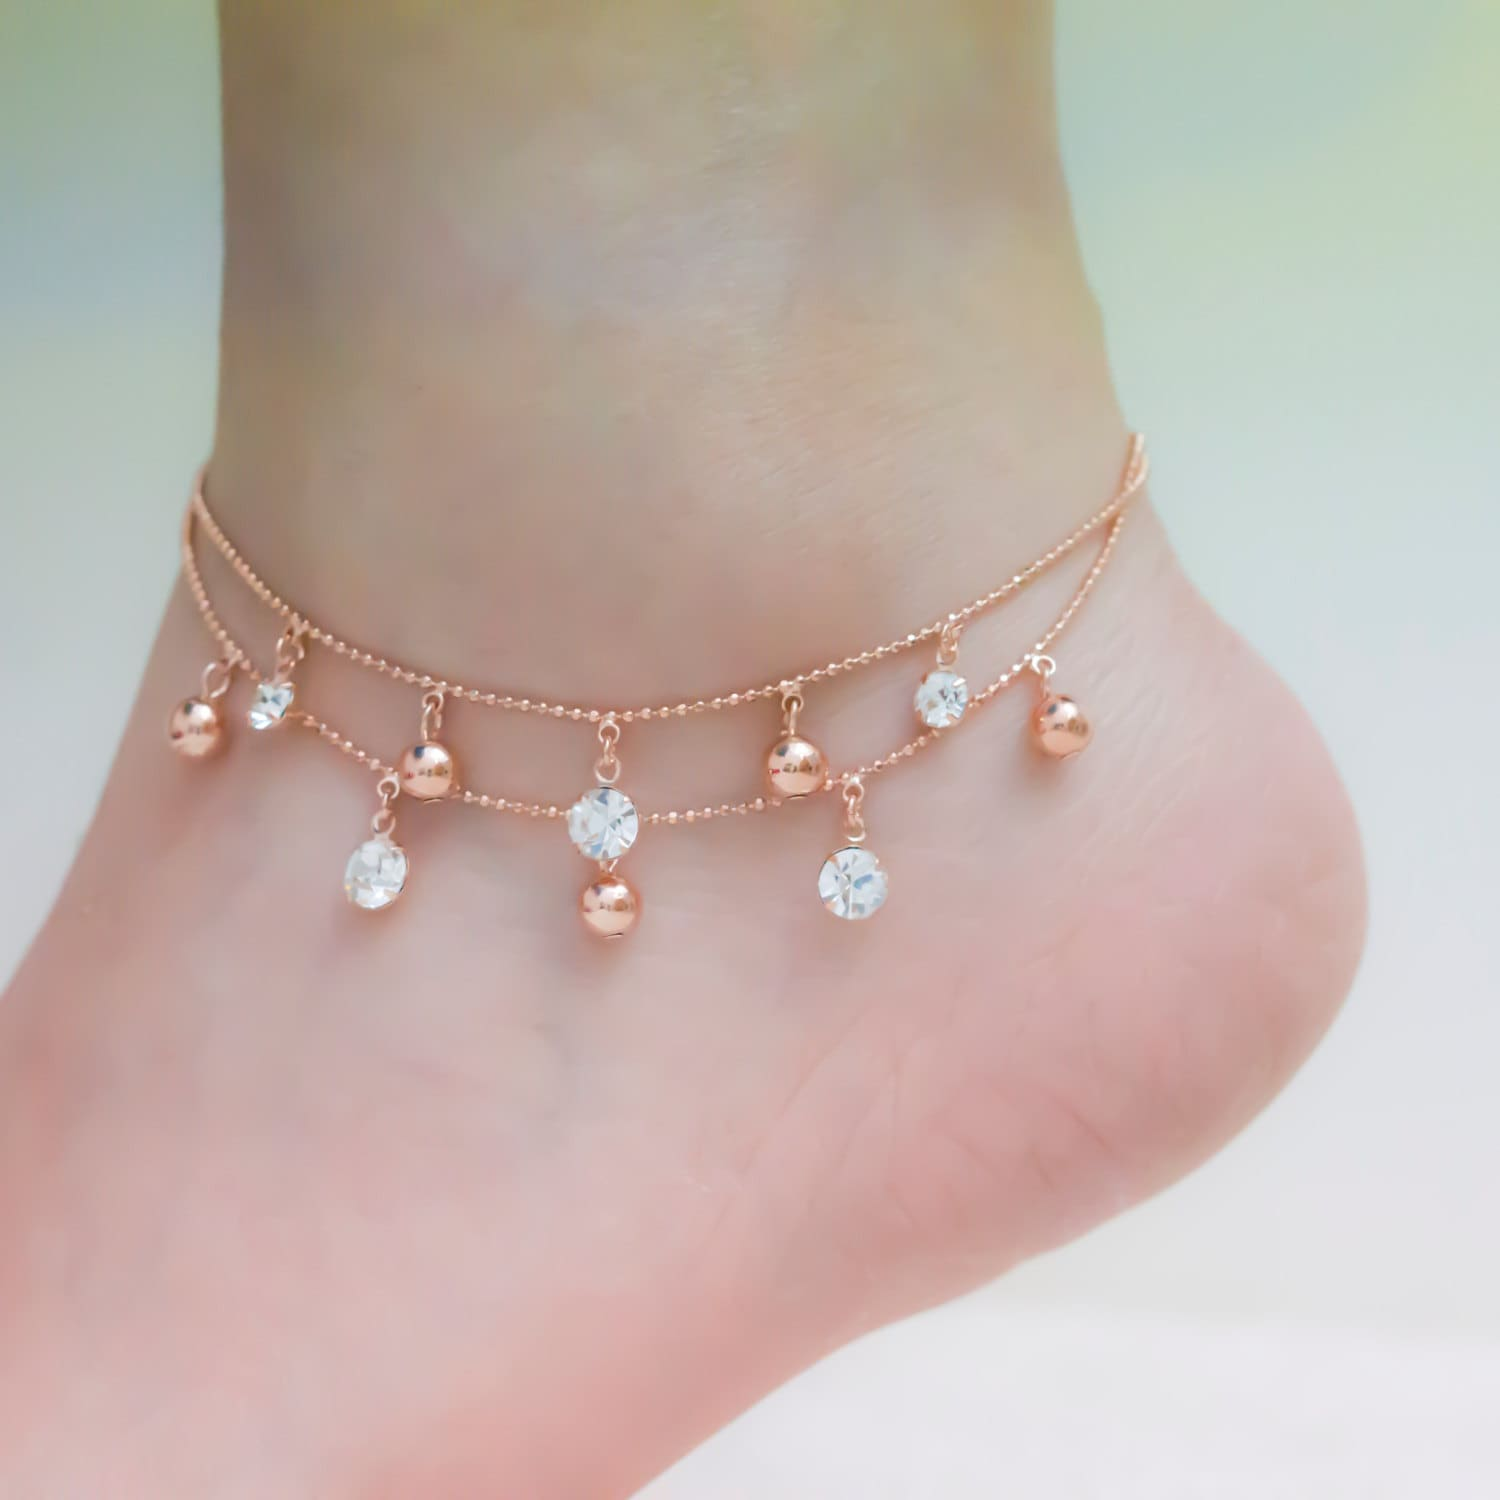 bracelets chain charms caymancode rolo silver anklet a adornment enamel cherry with gold charm ankle cute delightful sterling